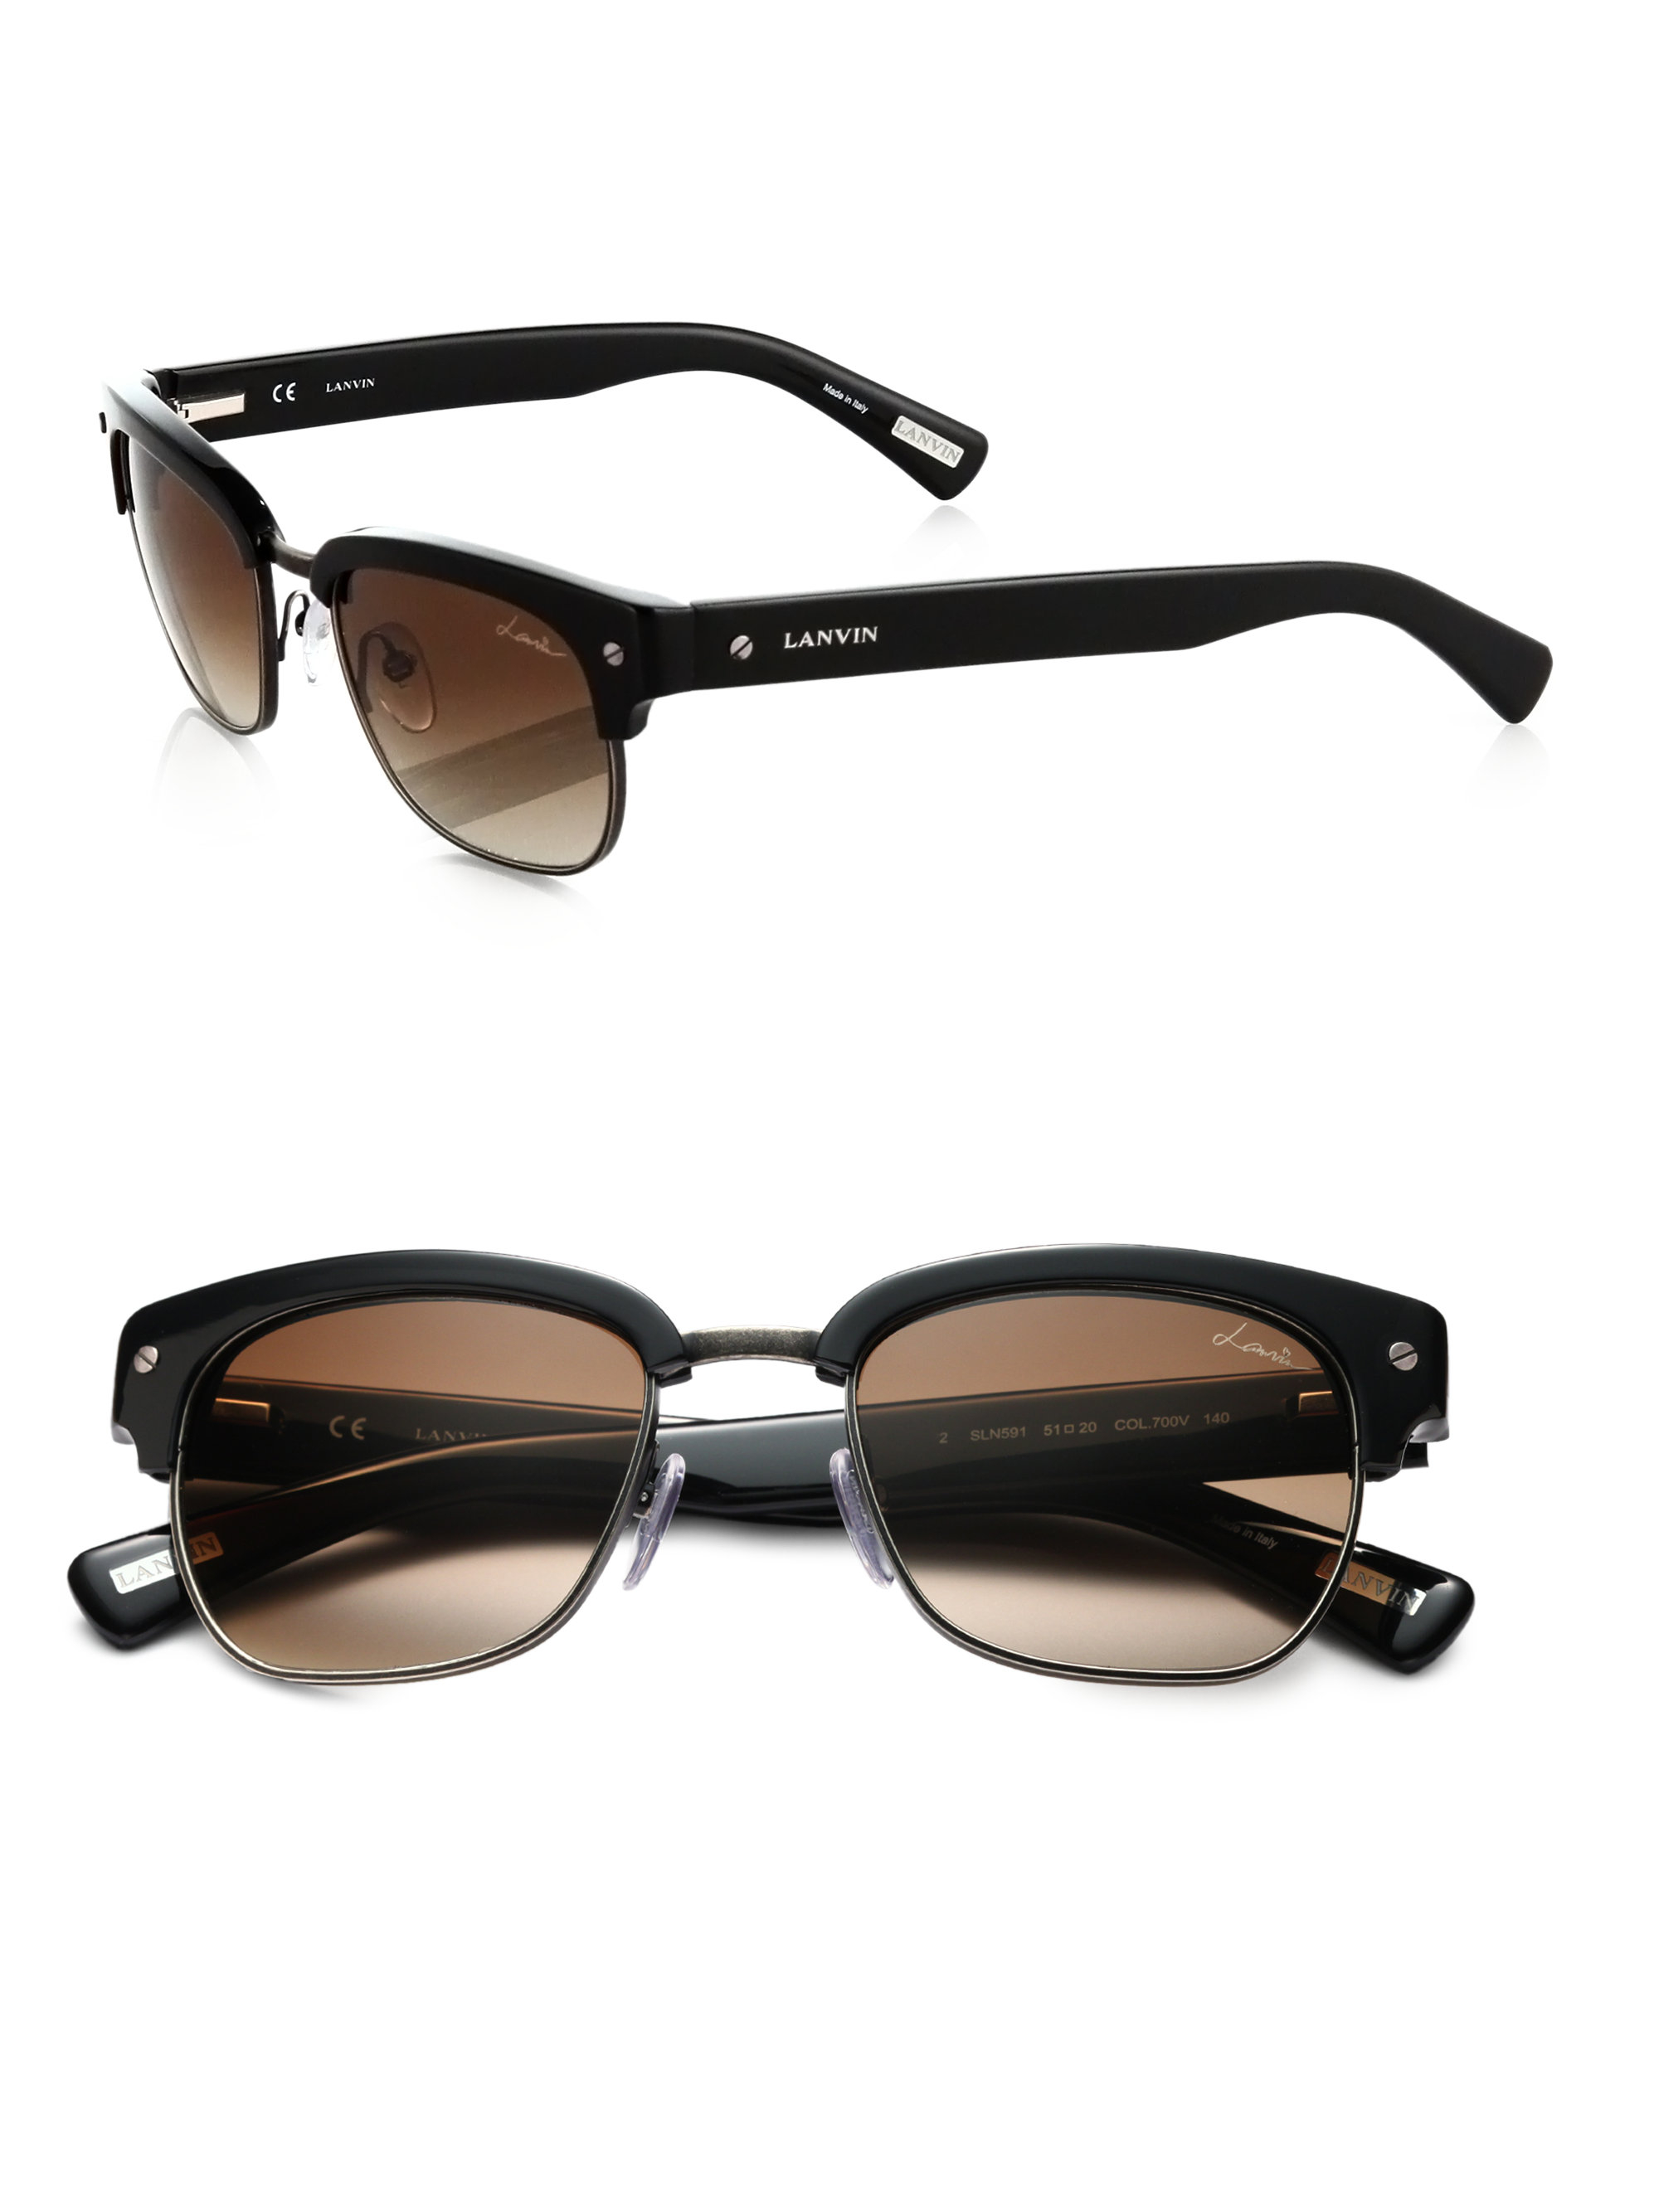 Discover our range of stylish men's sunglasses at ASOS. Shop for men's aviators, retro clubmasters, wayfarers & designer sunglasses. ASOS DESIGN round sunglasses in black metal with rainbow mirrored lens. $ ASOS DESIGN round sunglasses in crystal with blue mirrored lens. $ River Island retro sunglasses in silver.